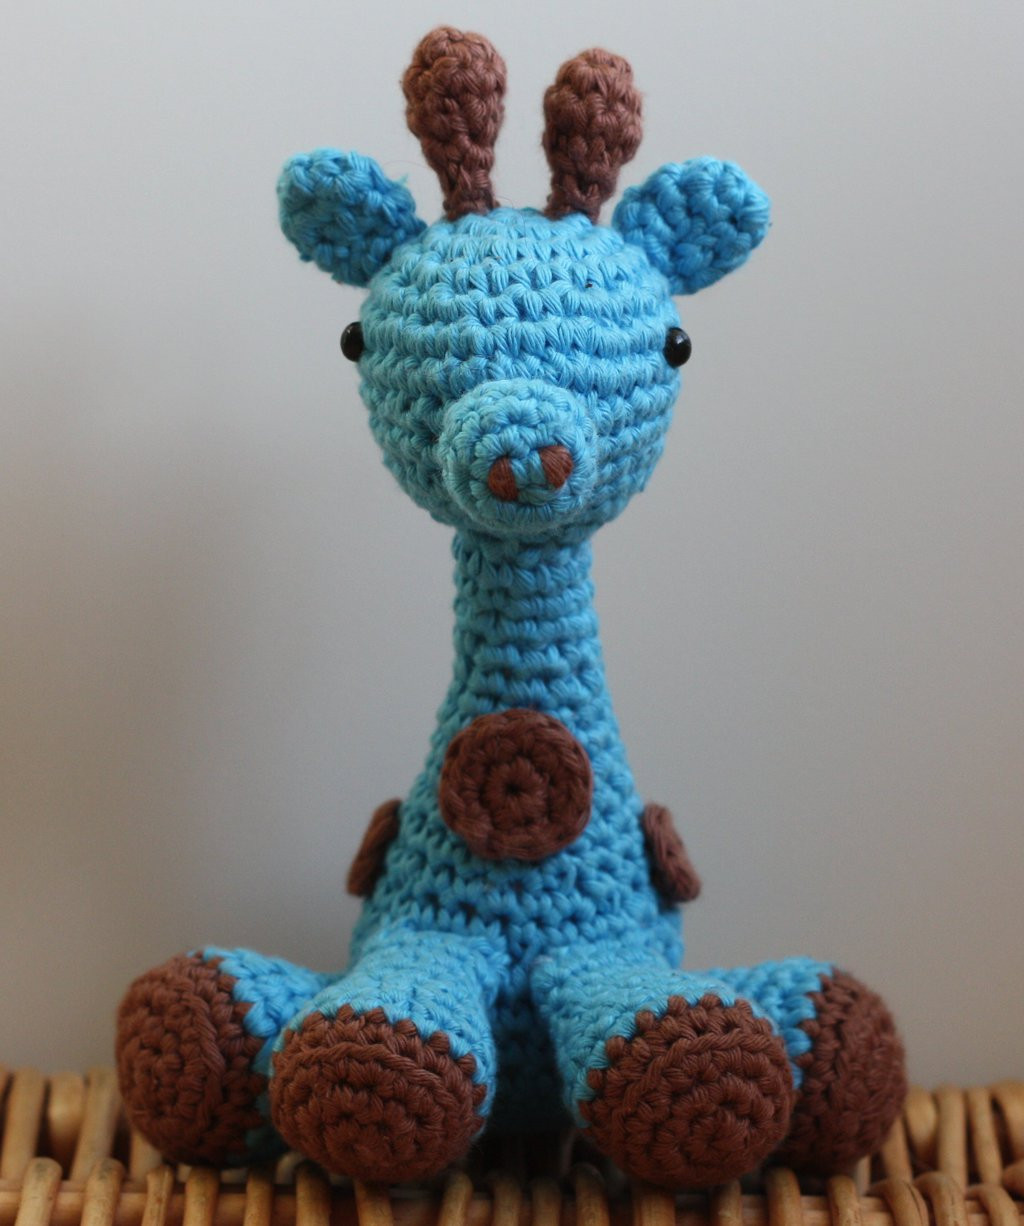 Blue Giraffe Crochet amigurumi by matandhelen on